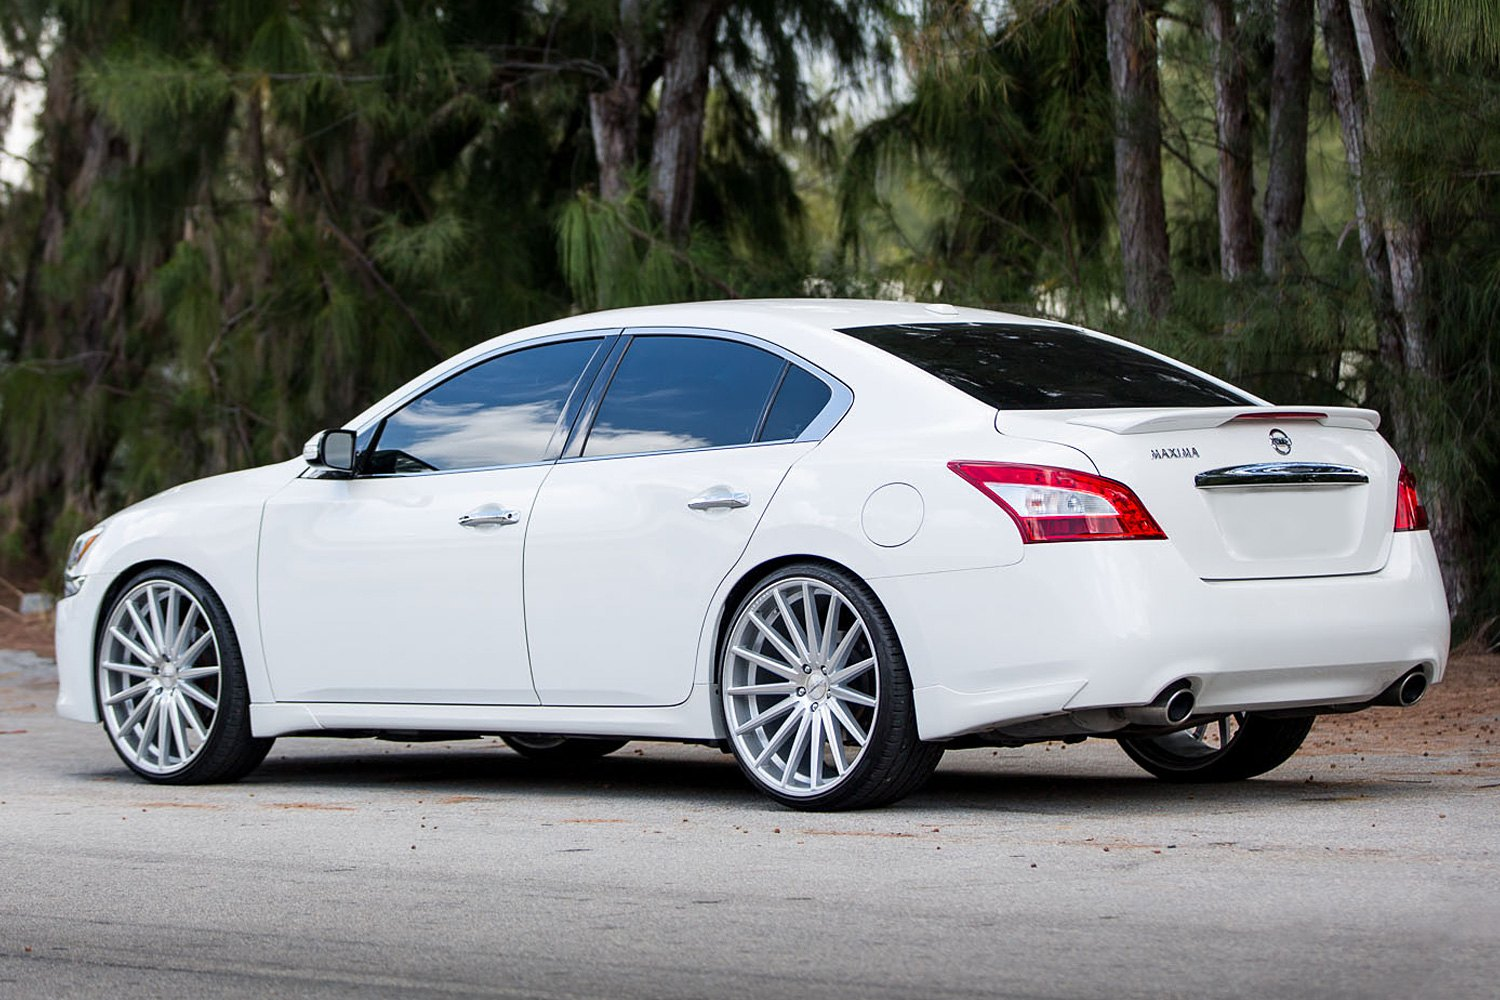 Vossen 174 Vfs 2 Wheels Silver With Polished Face Rims